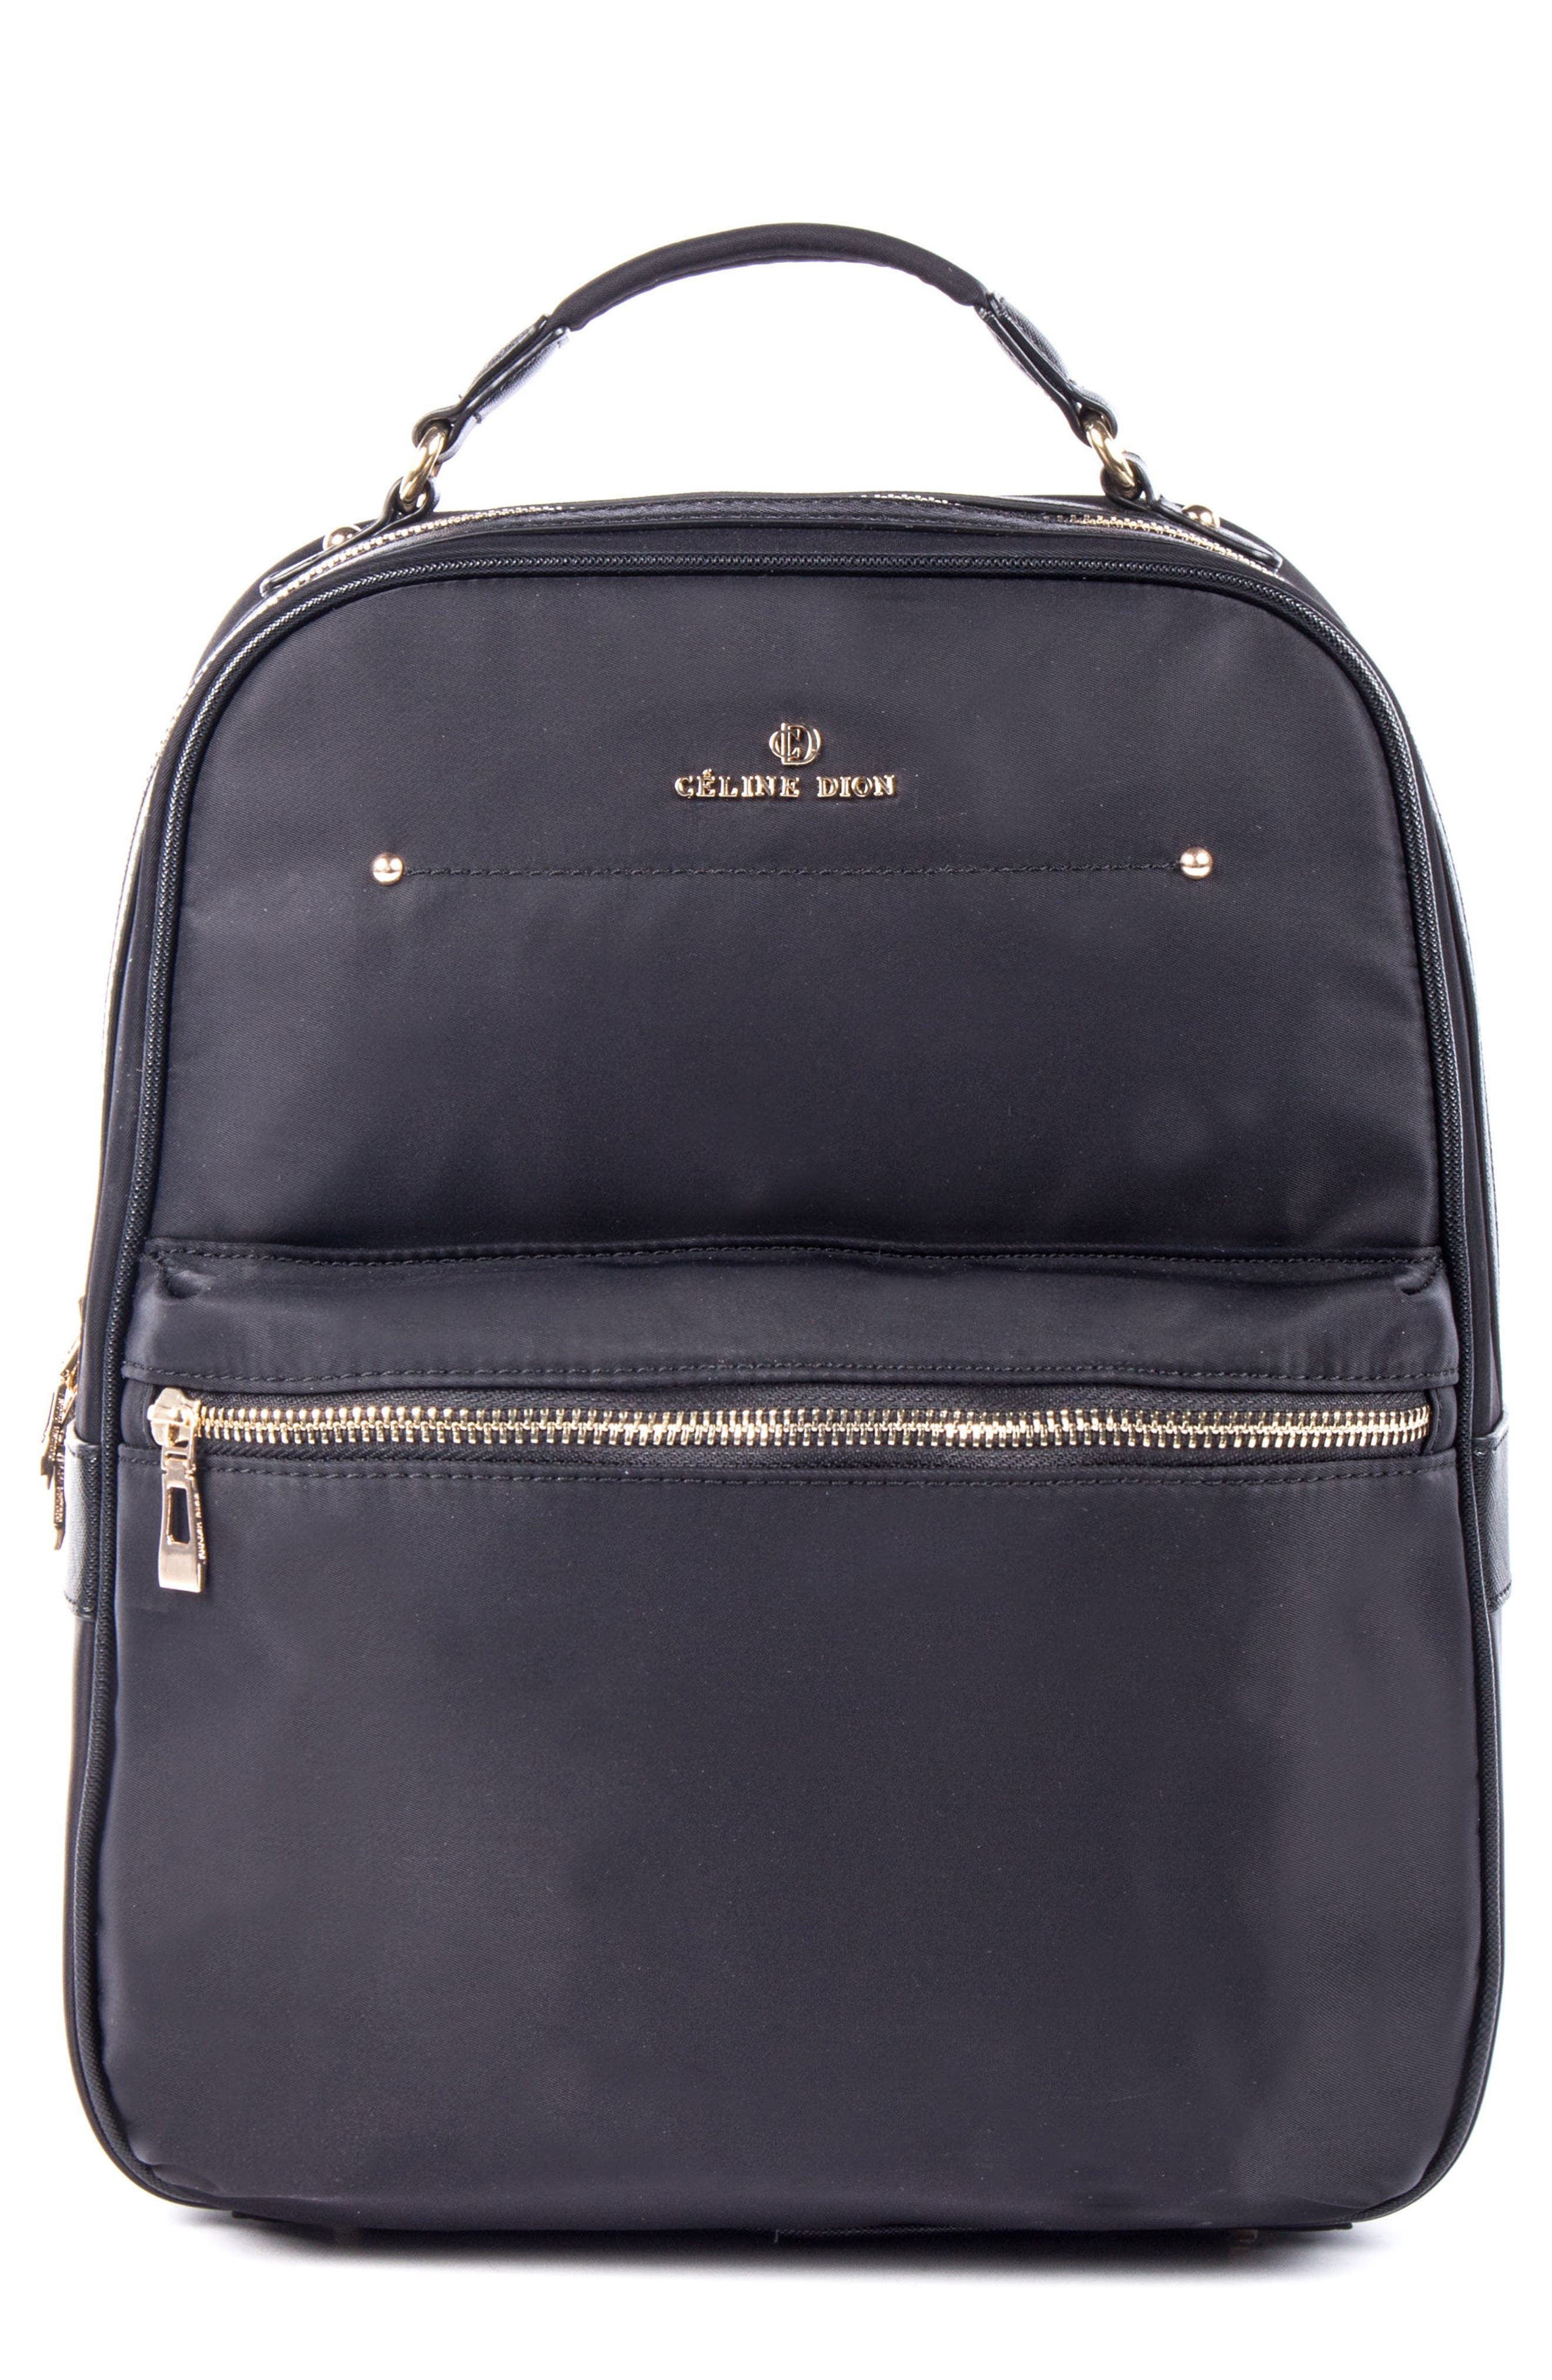 Céline Dion Presto Nylon Backpack,                         Main,                         color,